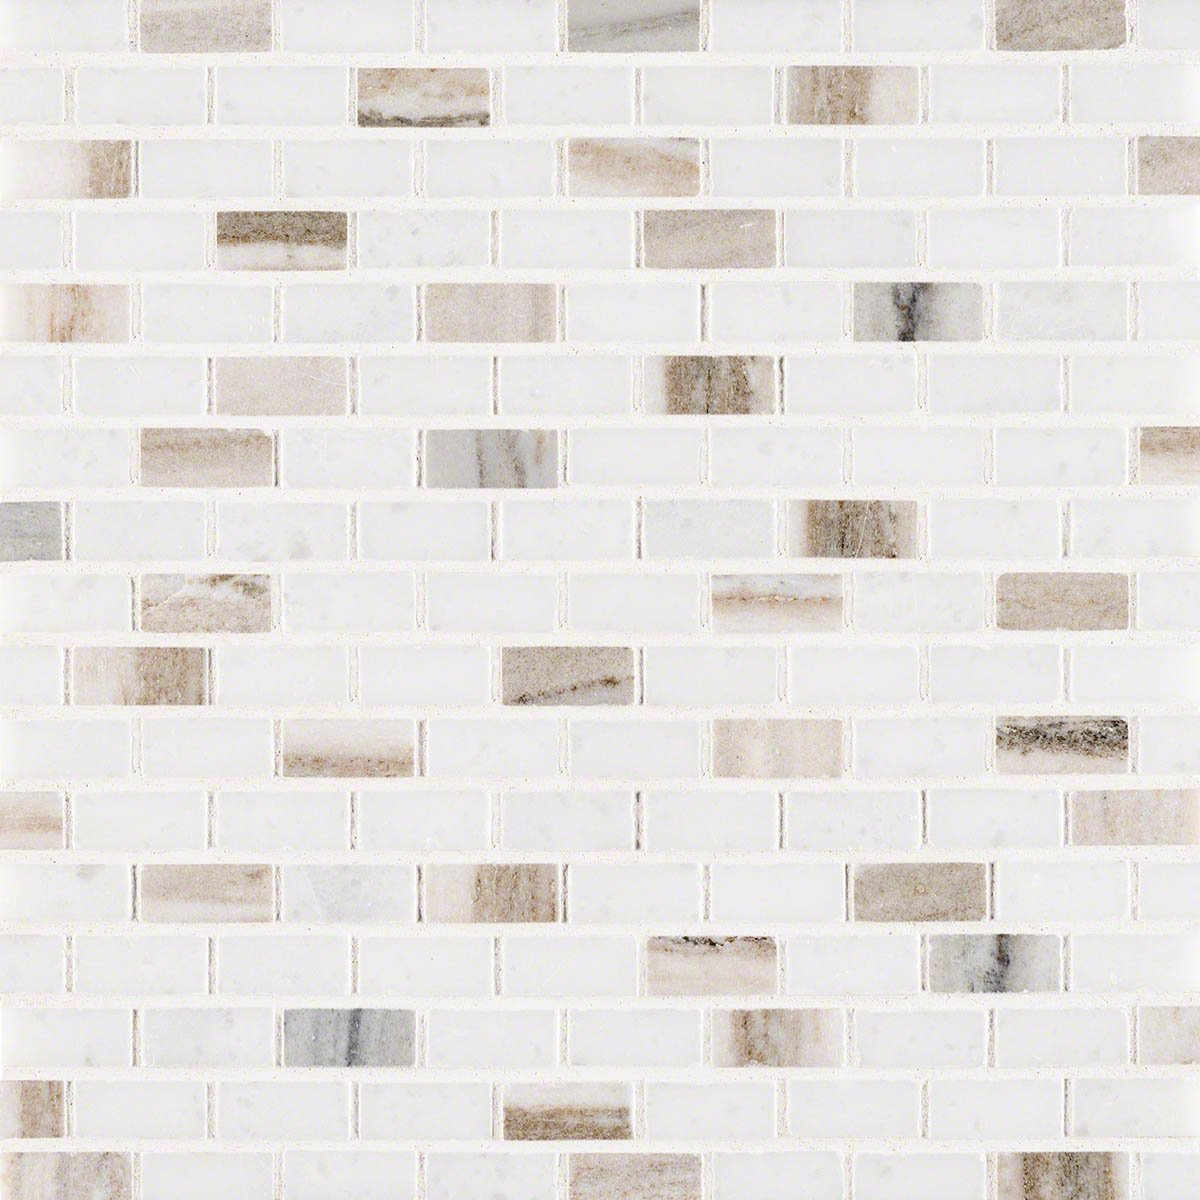 Palisandro Mini Brick Polished Marble Mosaic Tile by Marble 'n things